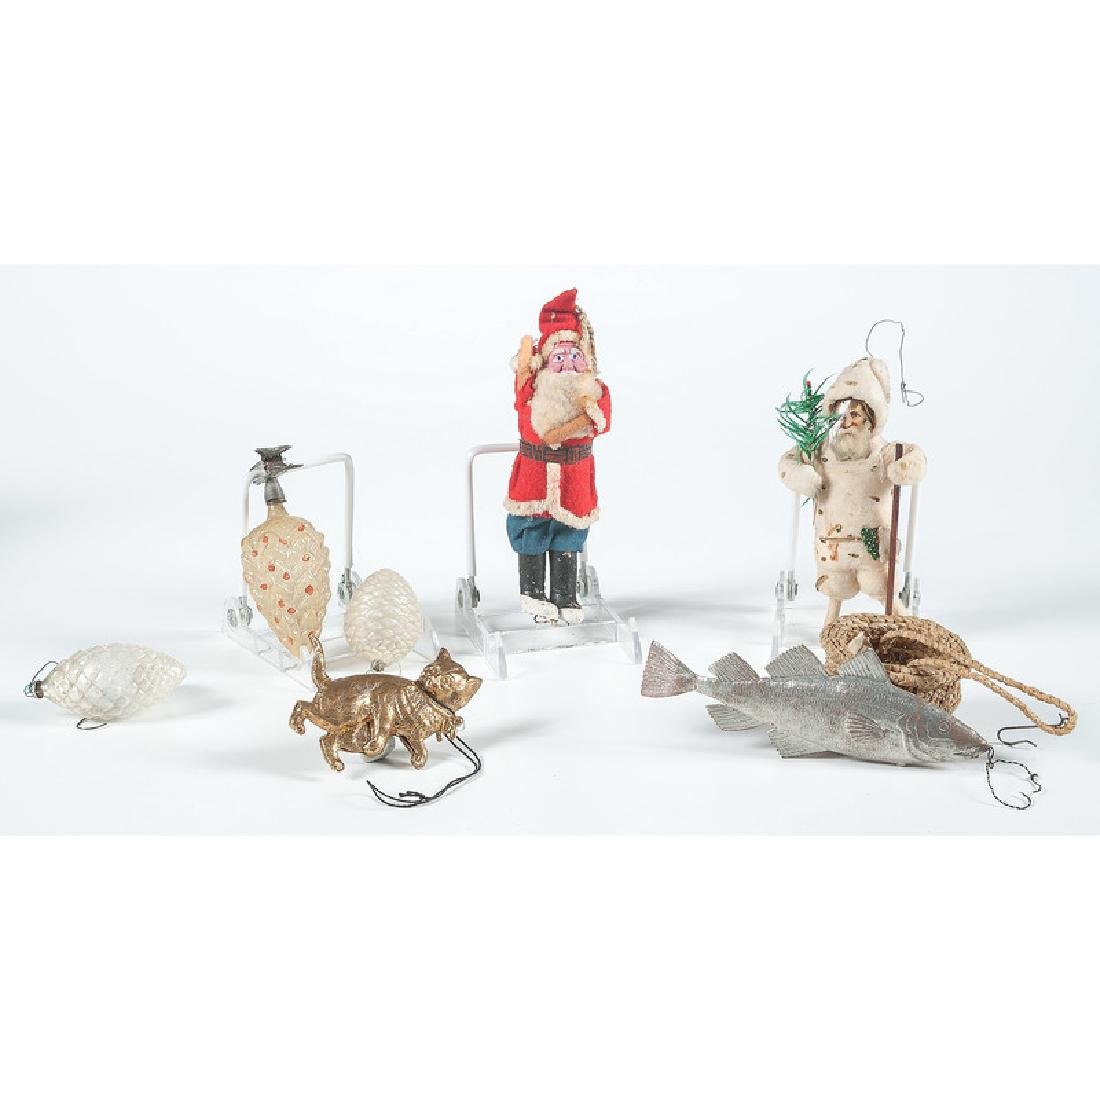 Antique Christmas Ornaments and Nativity Figures - 3